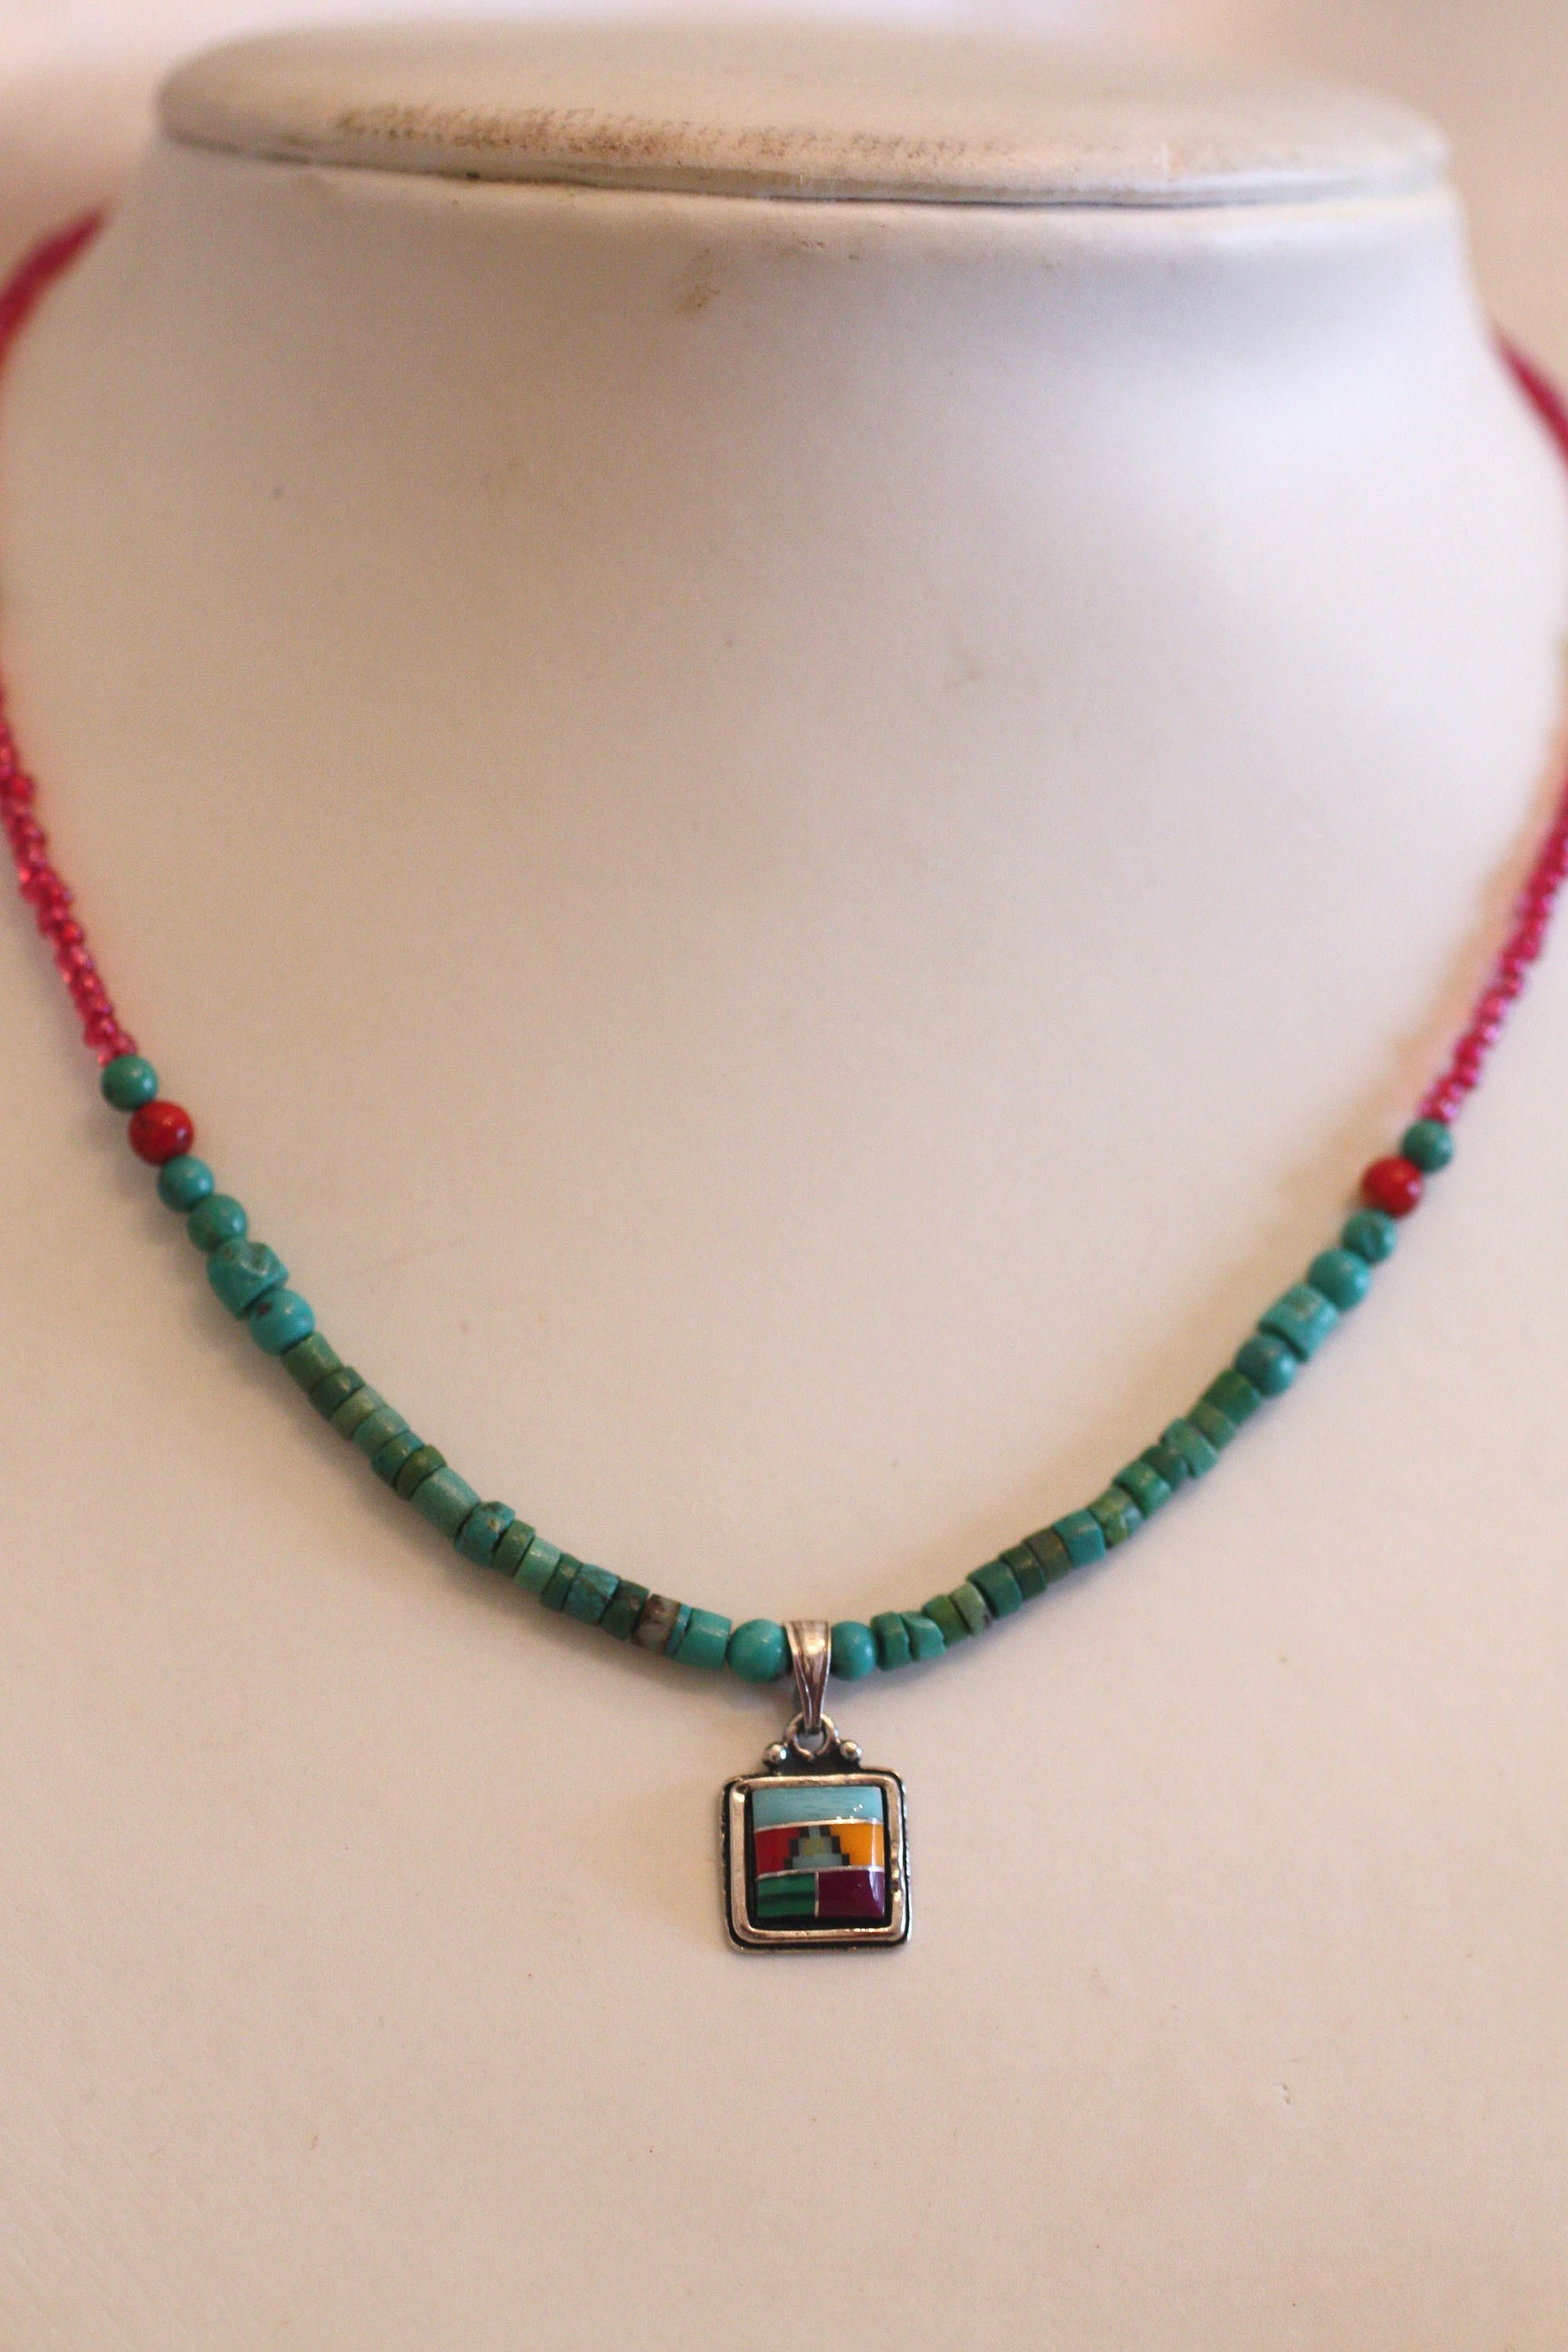 pendant necklace and earrings opal set jewelry zuni style inlay stone sterling multi american pin geometric native patterned